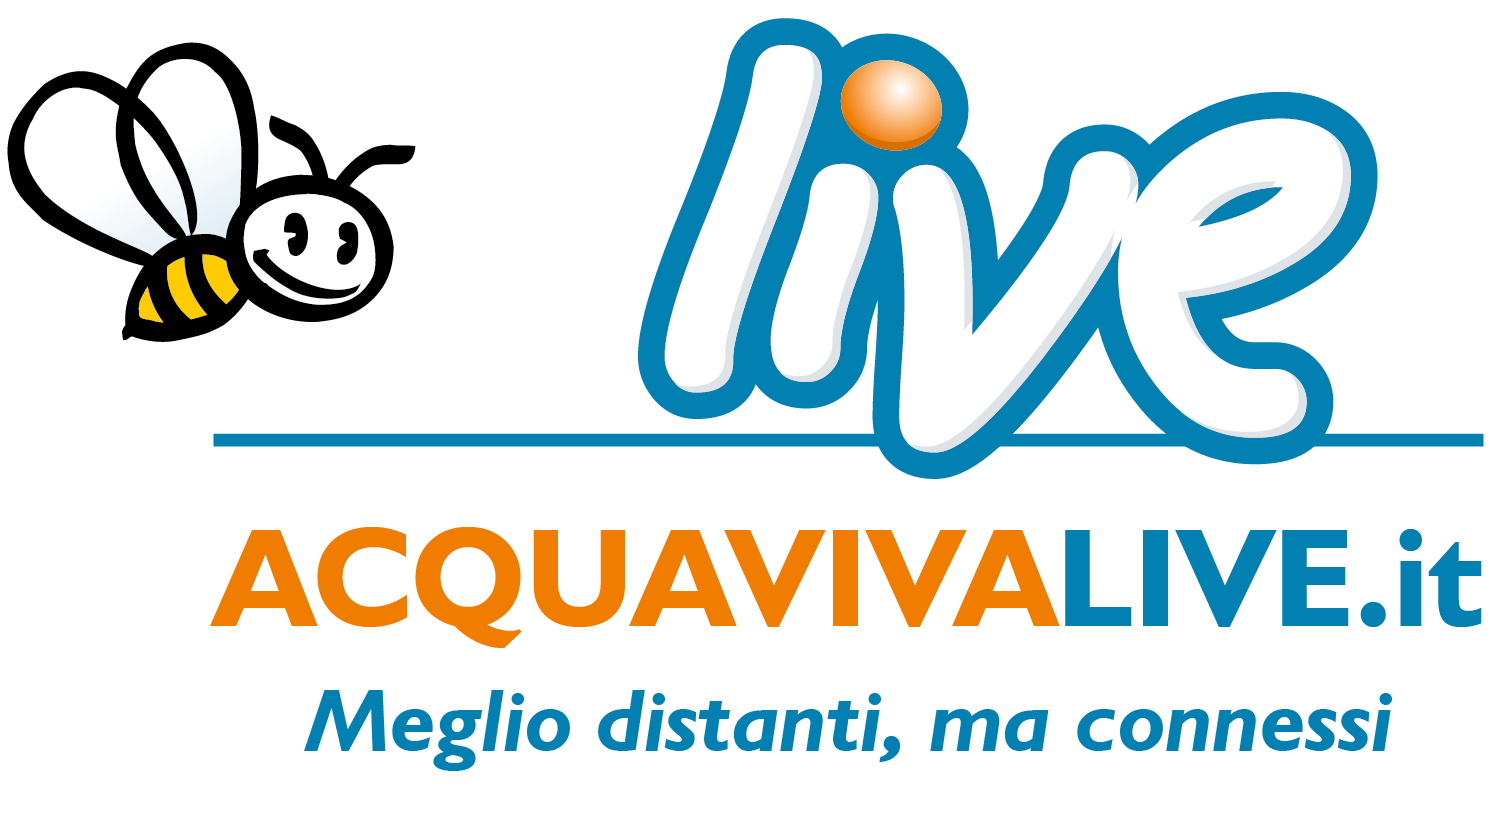 AcquavivaLive.it